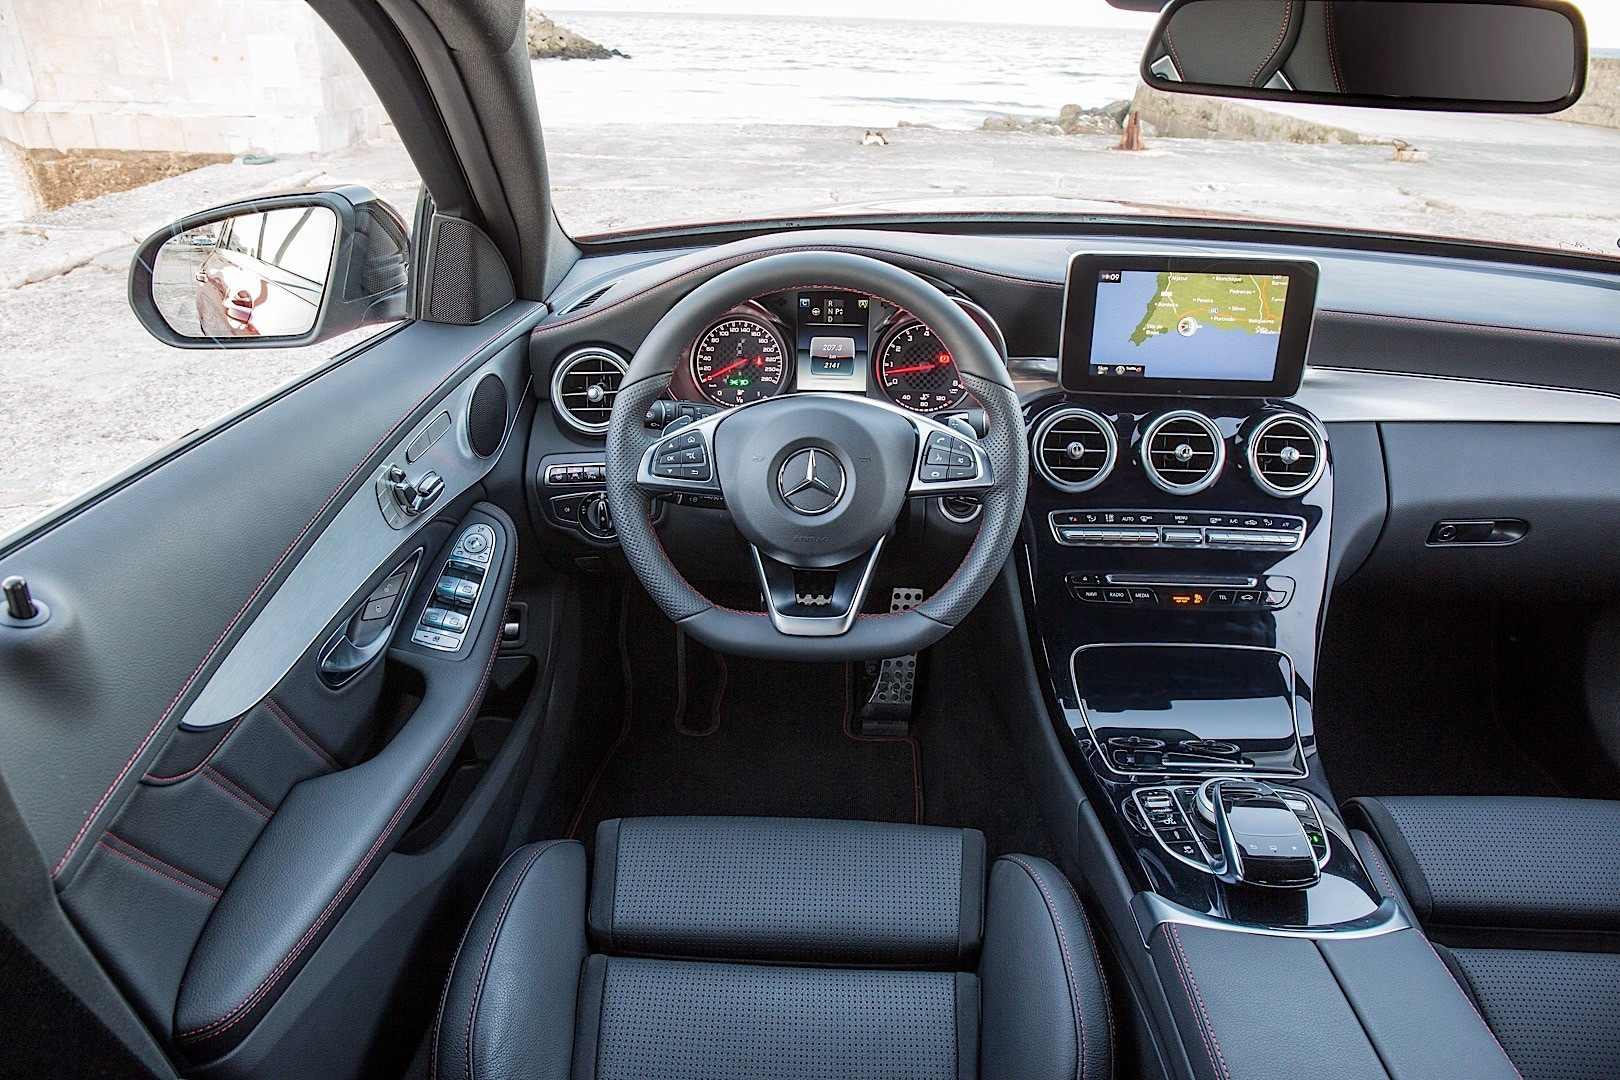 MERCEDES BENZ C 450 AMG T-Modell (S205) specs - 2014, 2015 ...